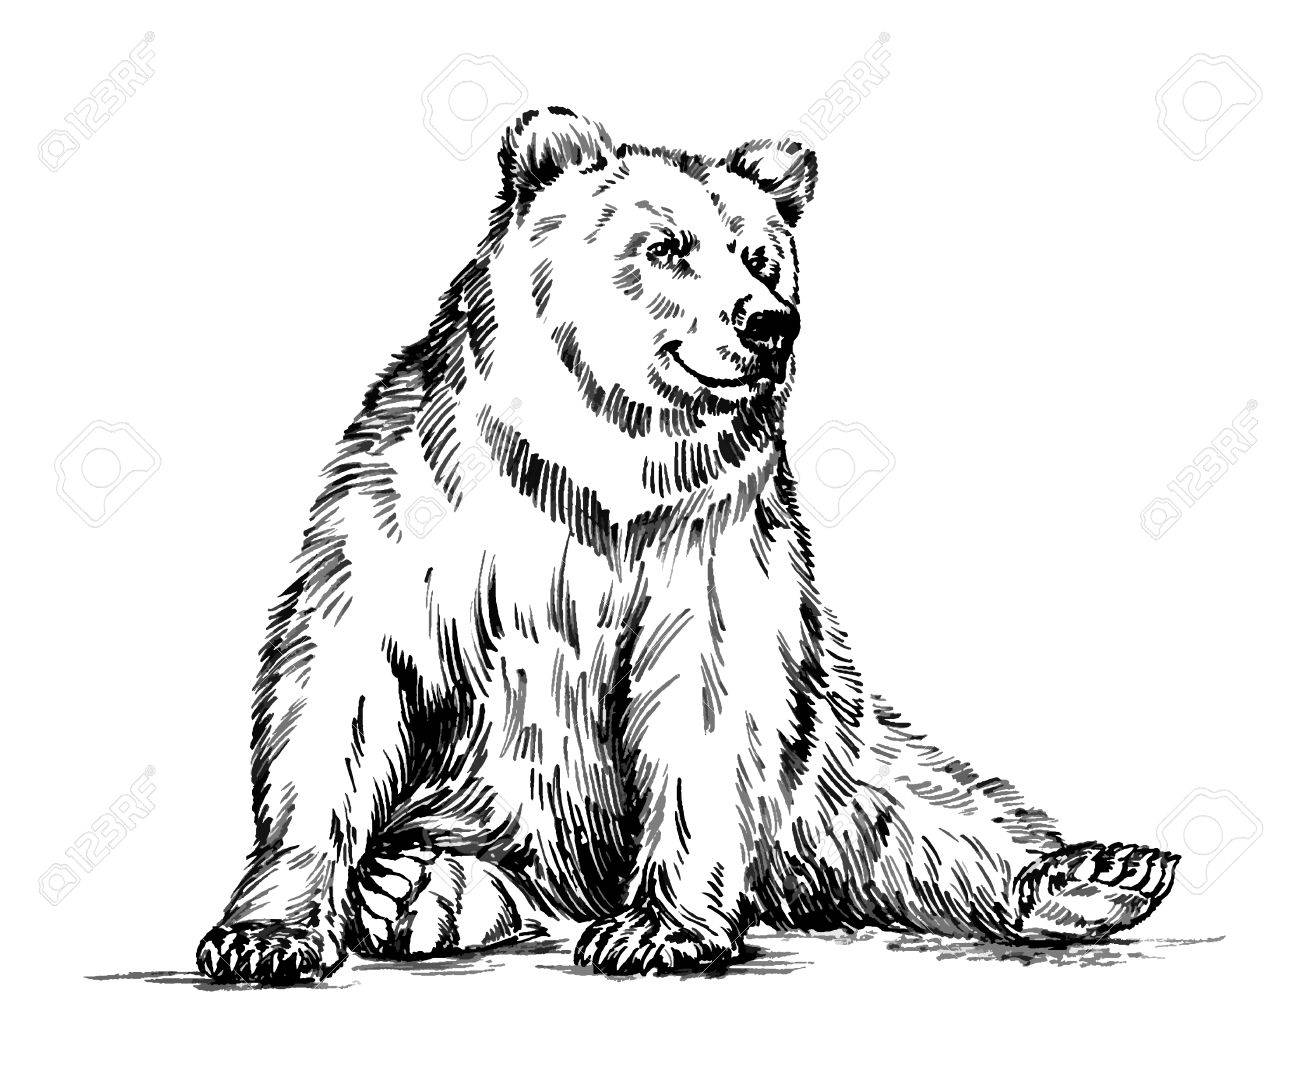 draw grizzly bear wildlifeartgrizzly bear standing bear drawing free bear grizzly draw